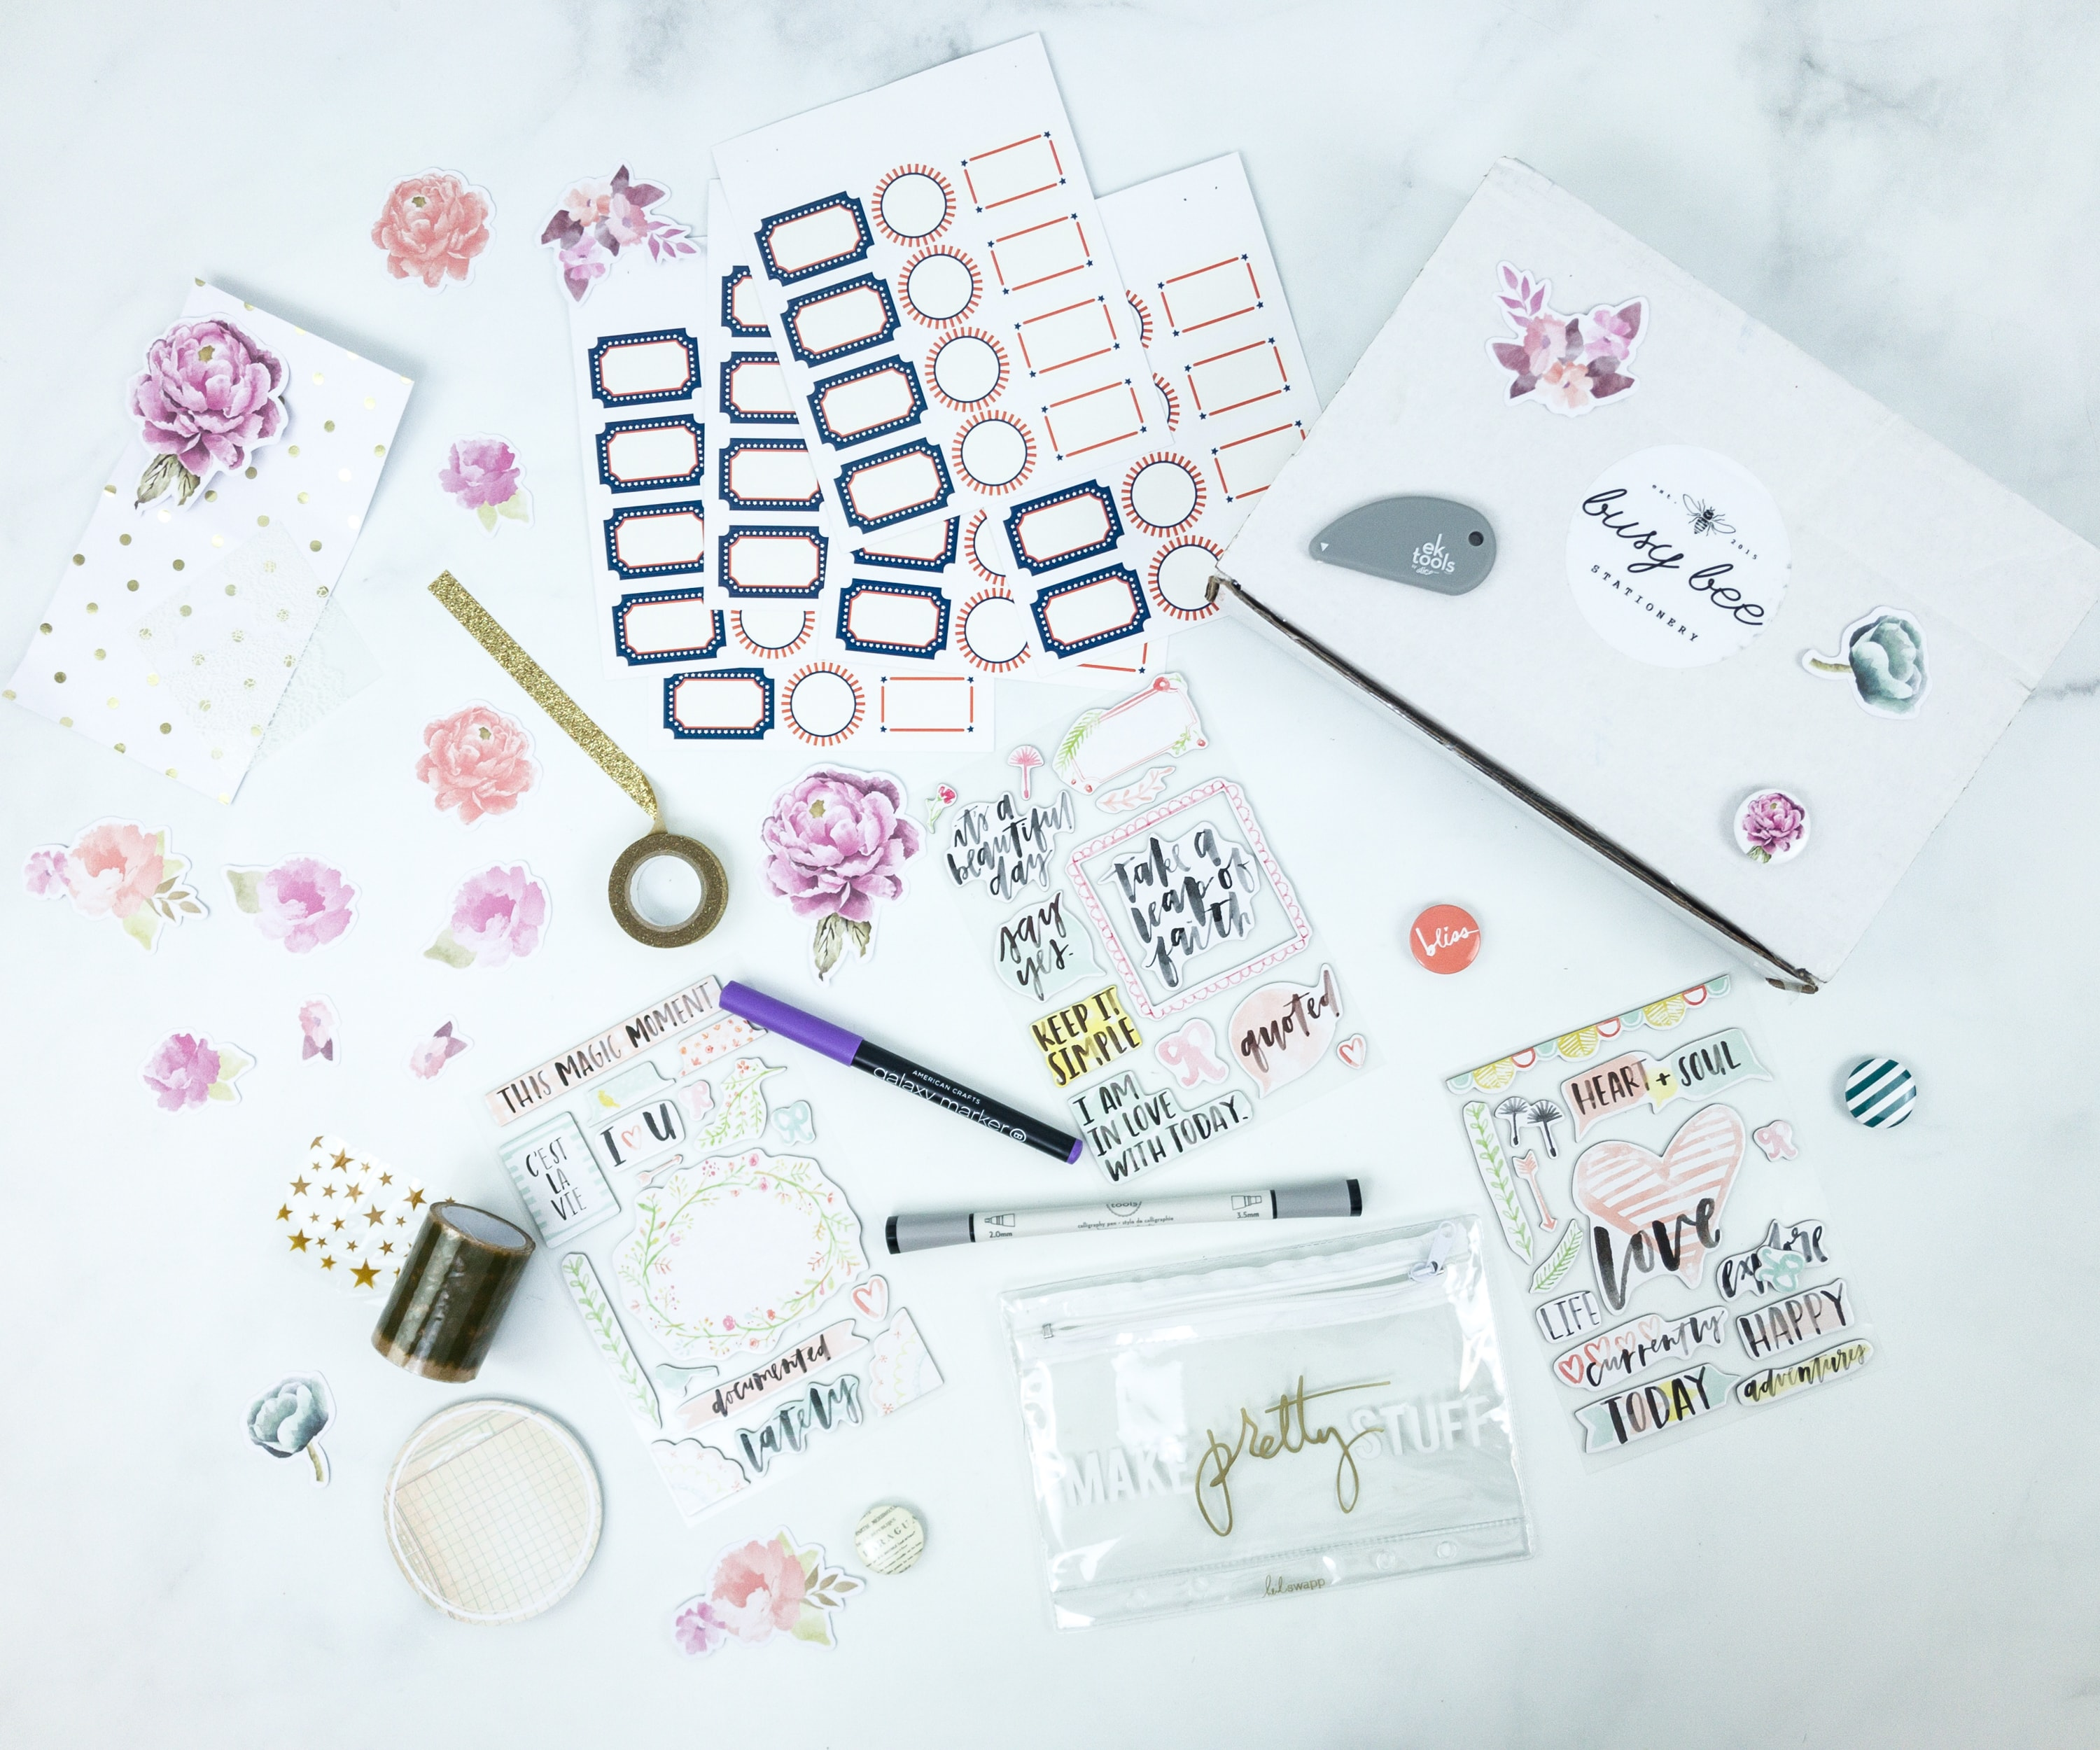 Busy Bee Stationery June 2019 Subscription Box Review